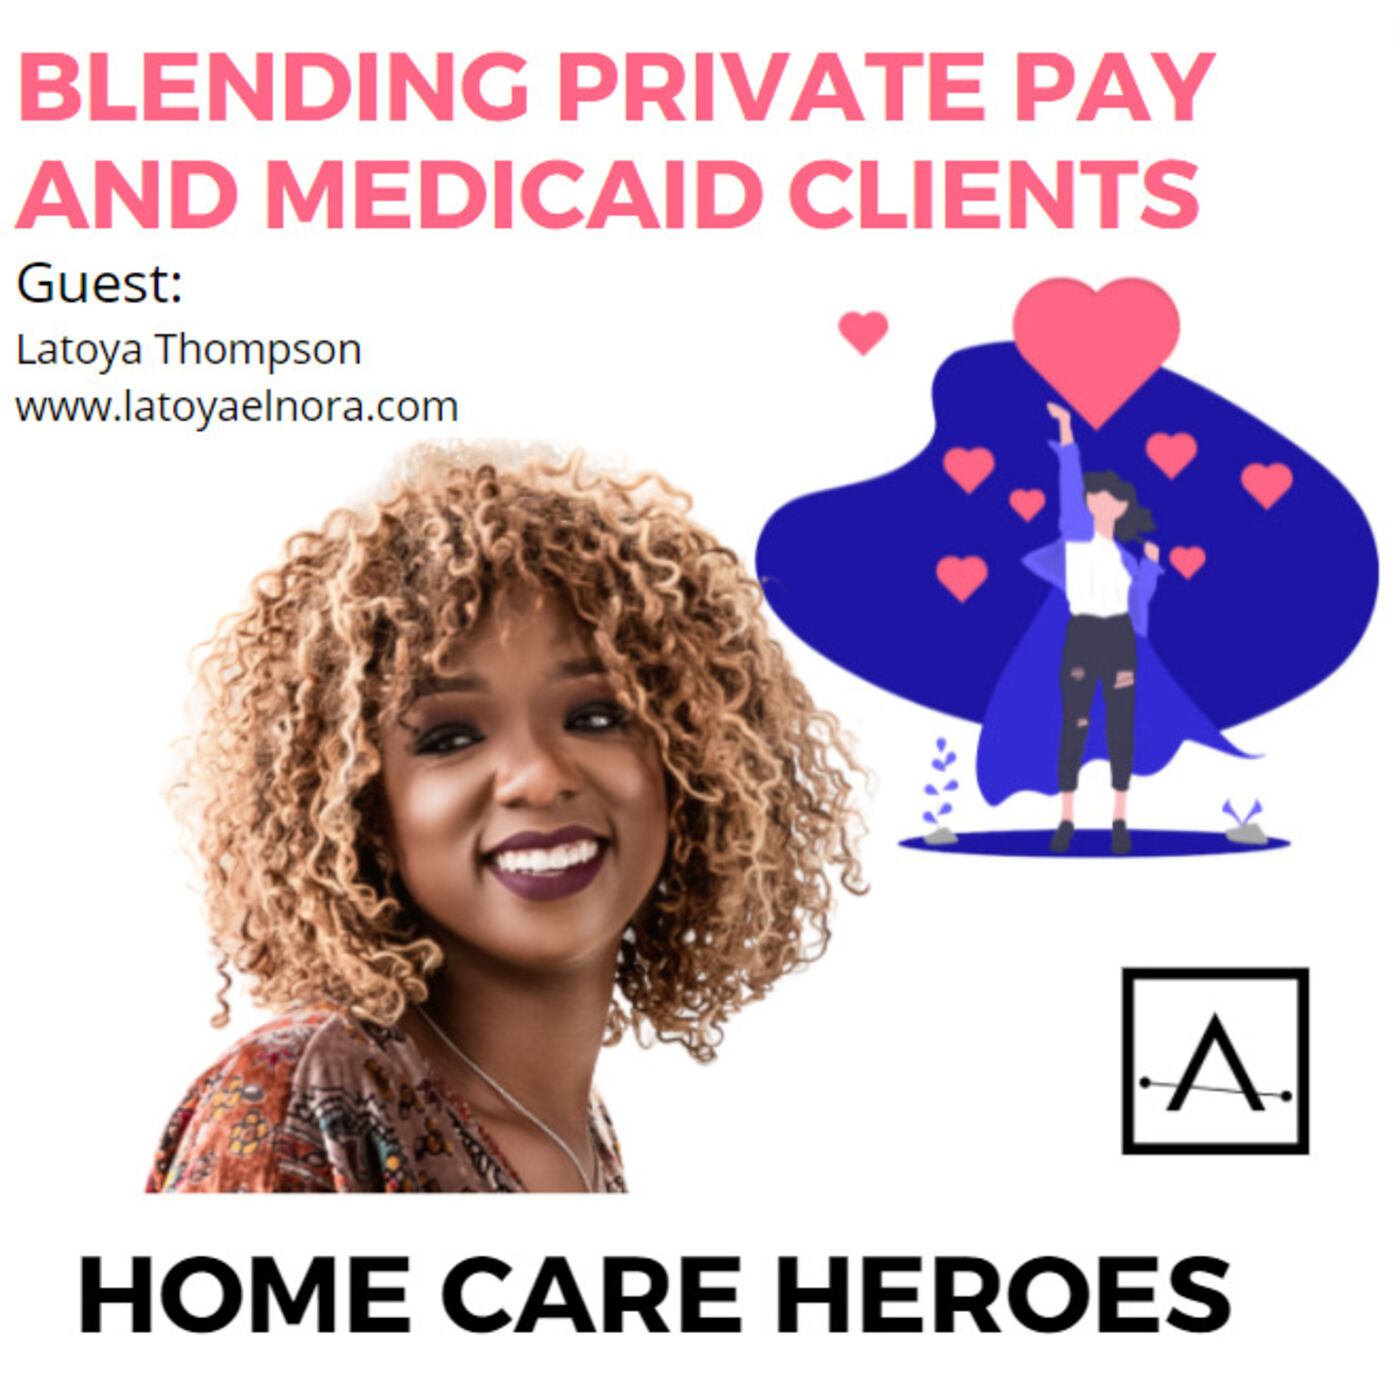 Blending Private Pay and Medicaid Clients (with Latoya Thompson)